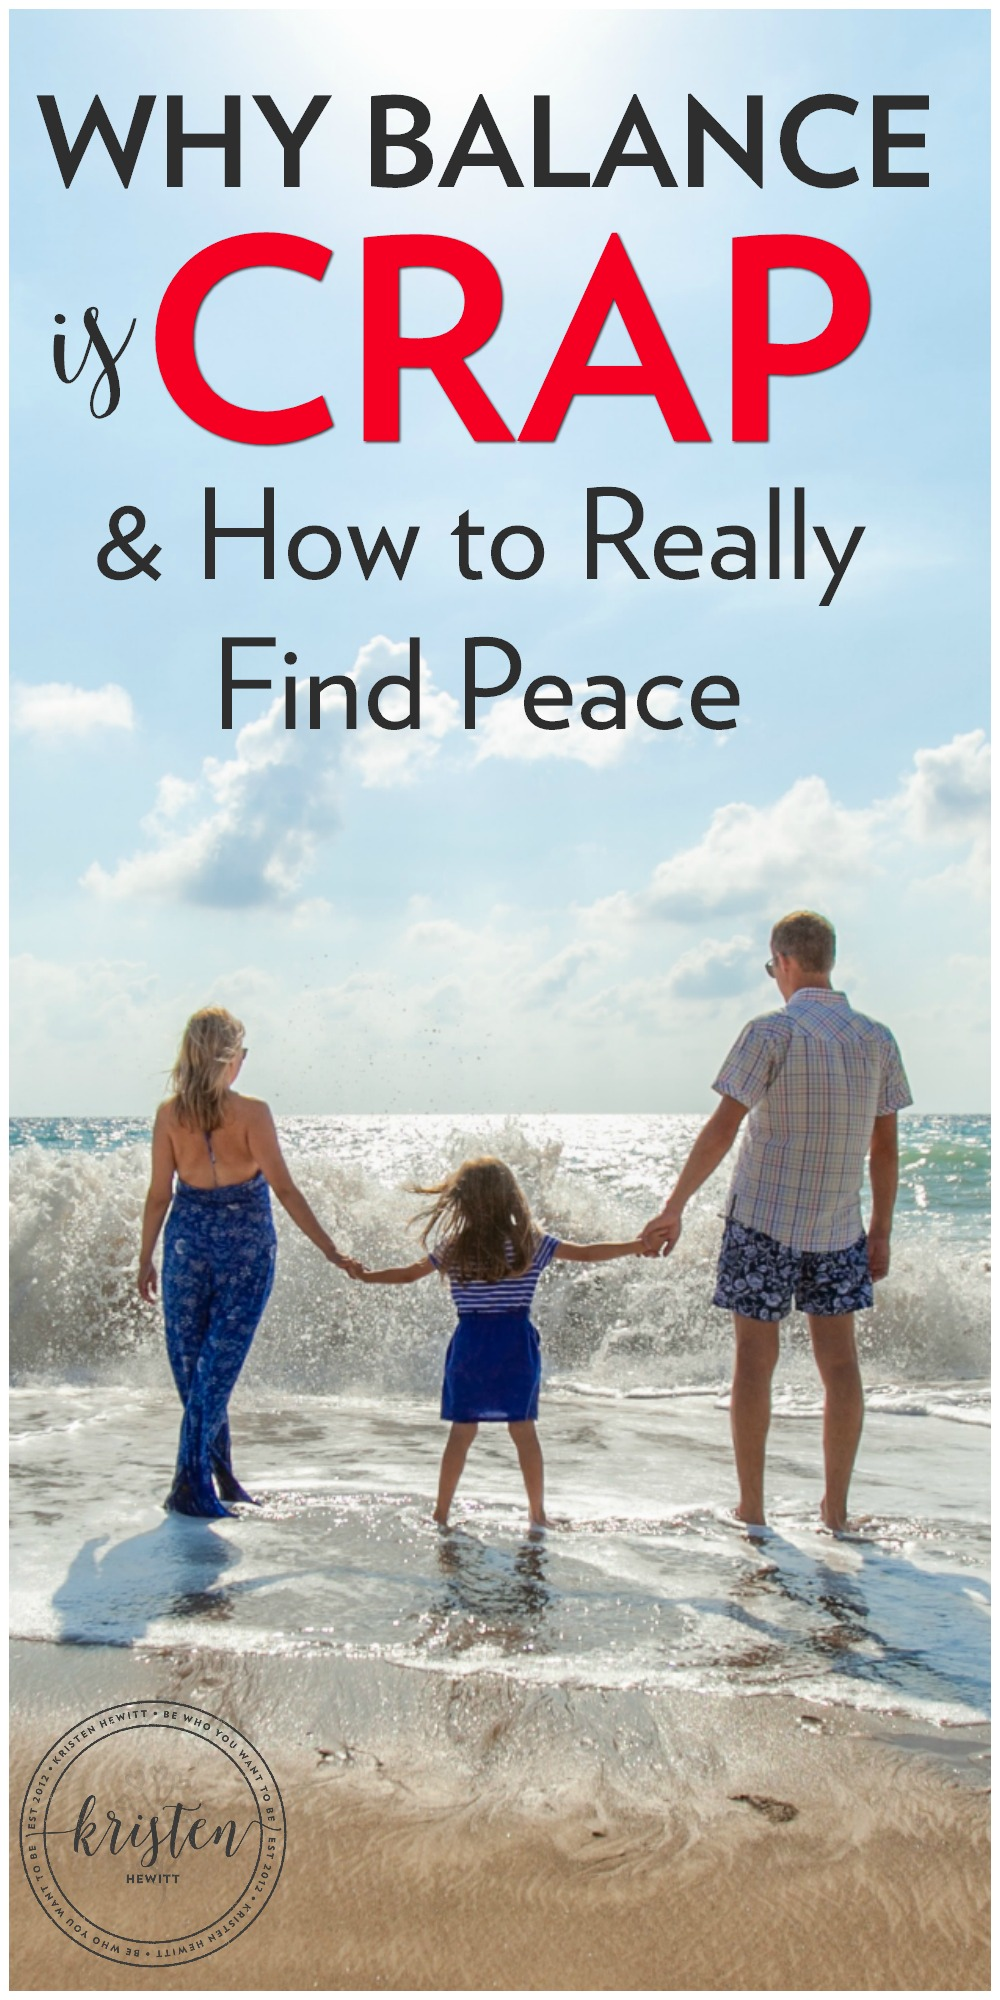 Are you struggling to find the balance between work, family, and all of your other responsibilities? Read why balance is crap and what you can do now to really find peace!